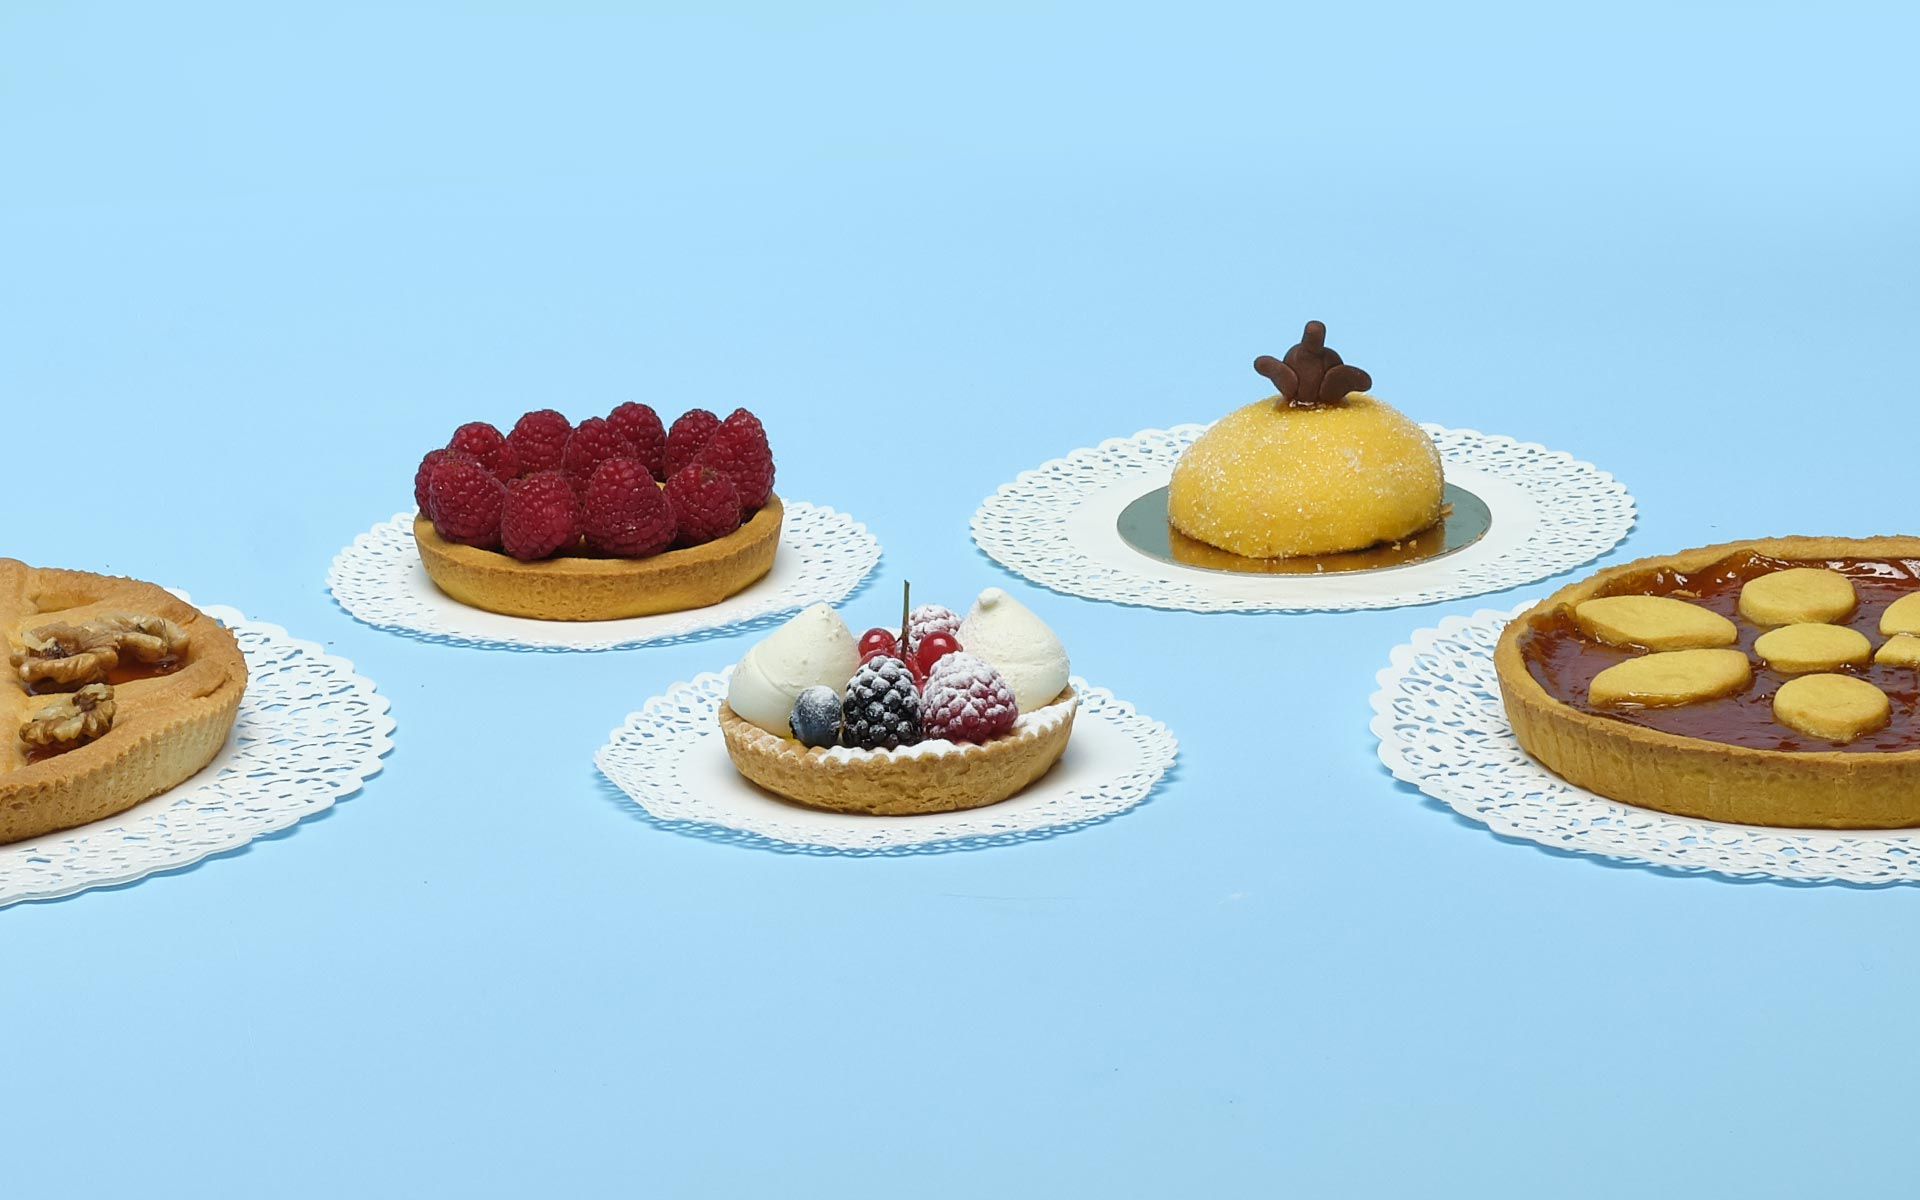 Novaservice custom pastry products